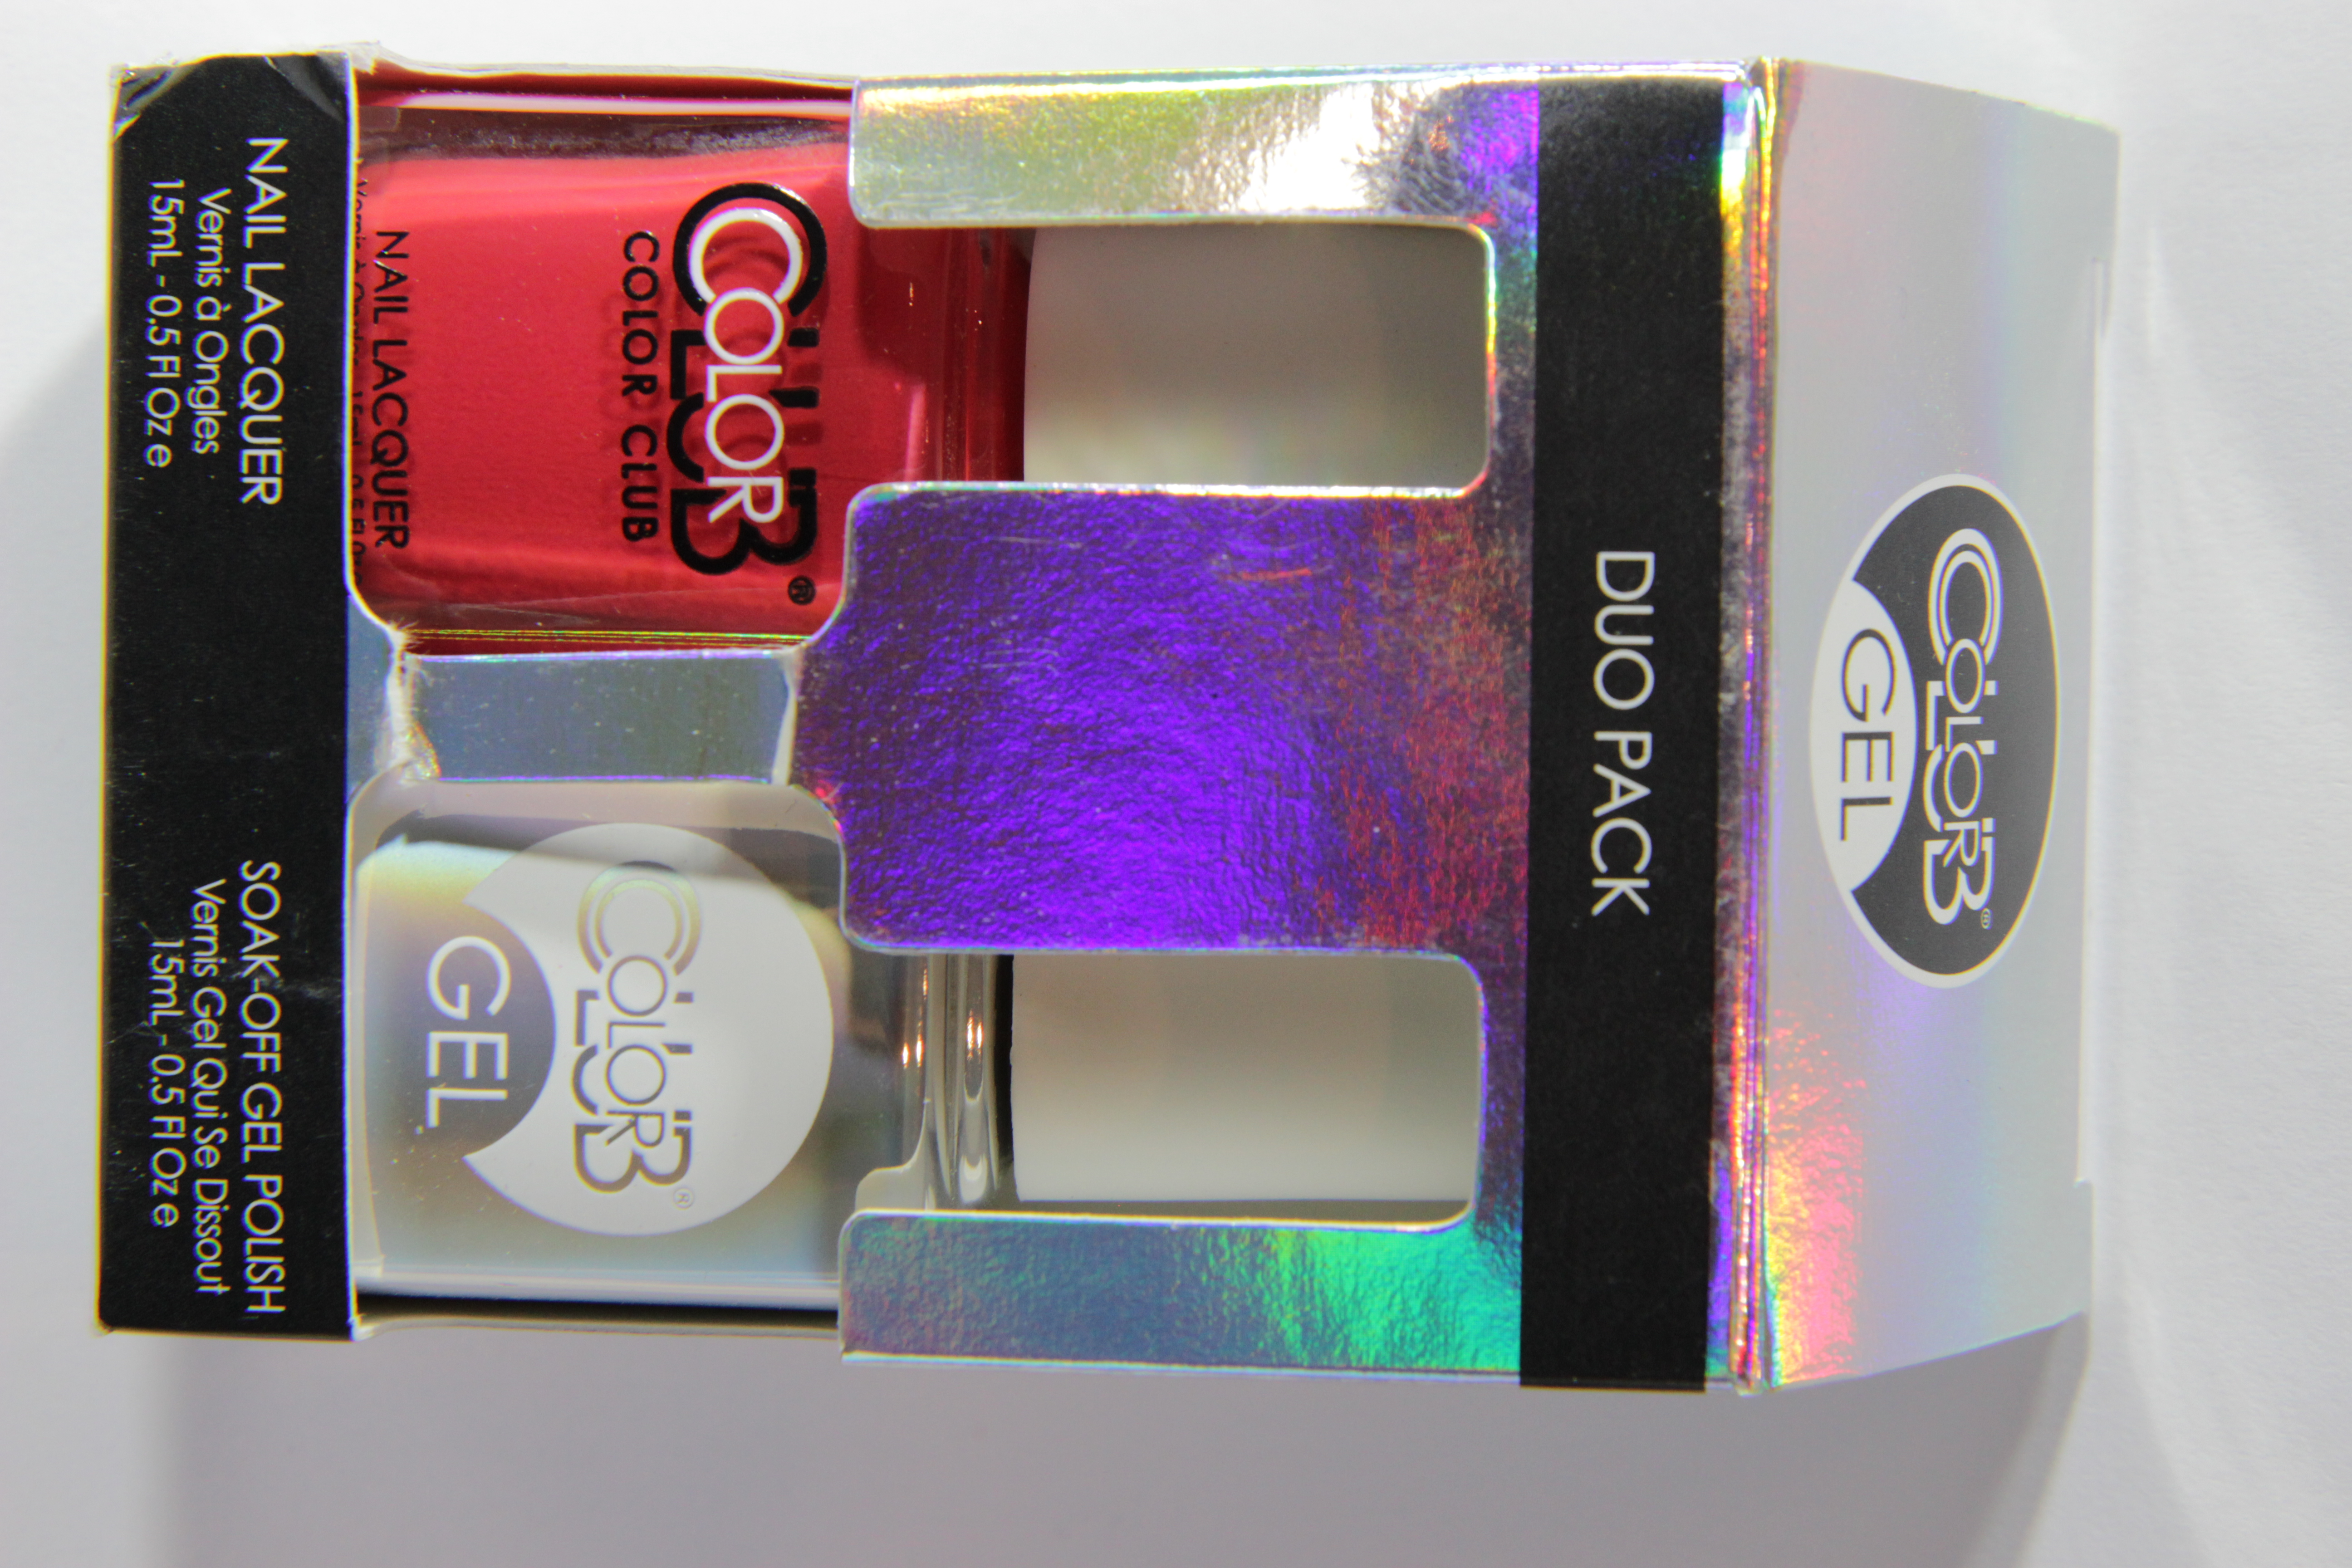 #0771 LOVE LINKS Color Club Duo Nagellack Nail Lacquer and Soak-Off Gel Polish rot red